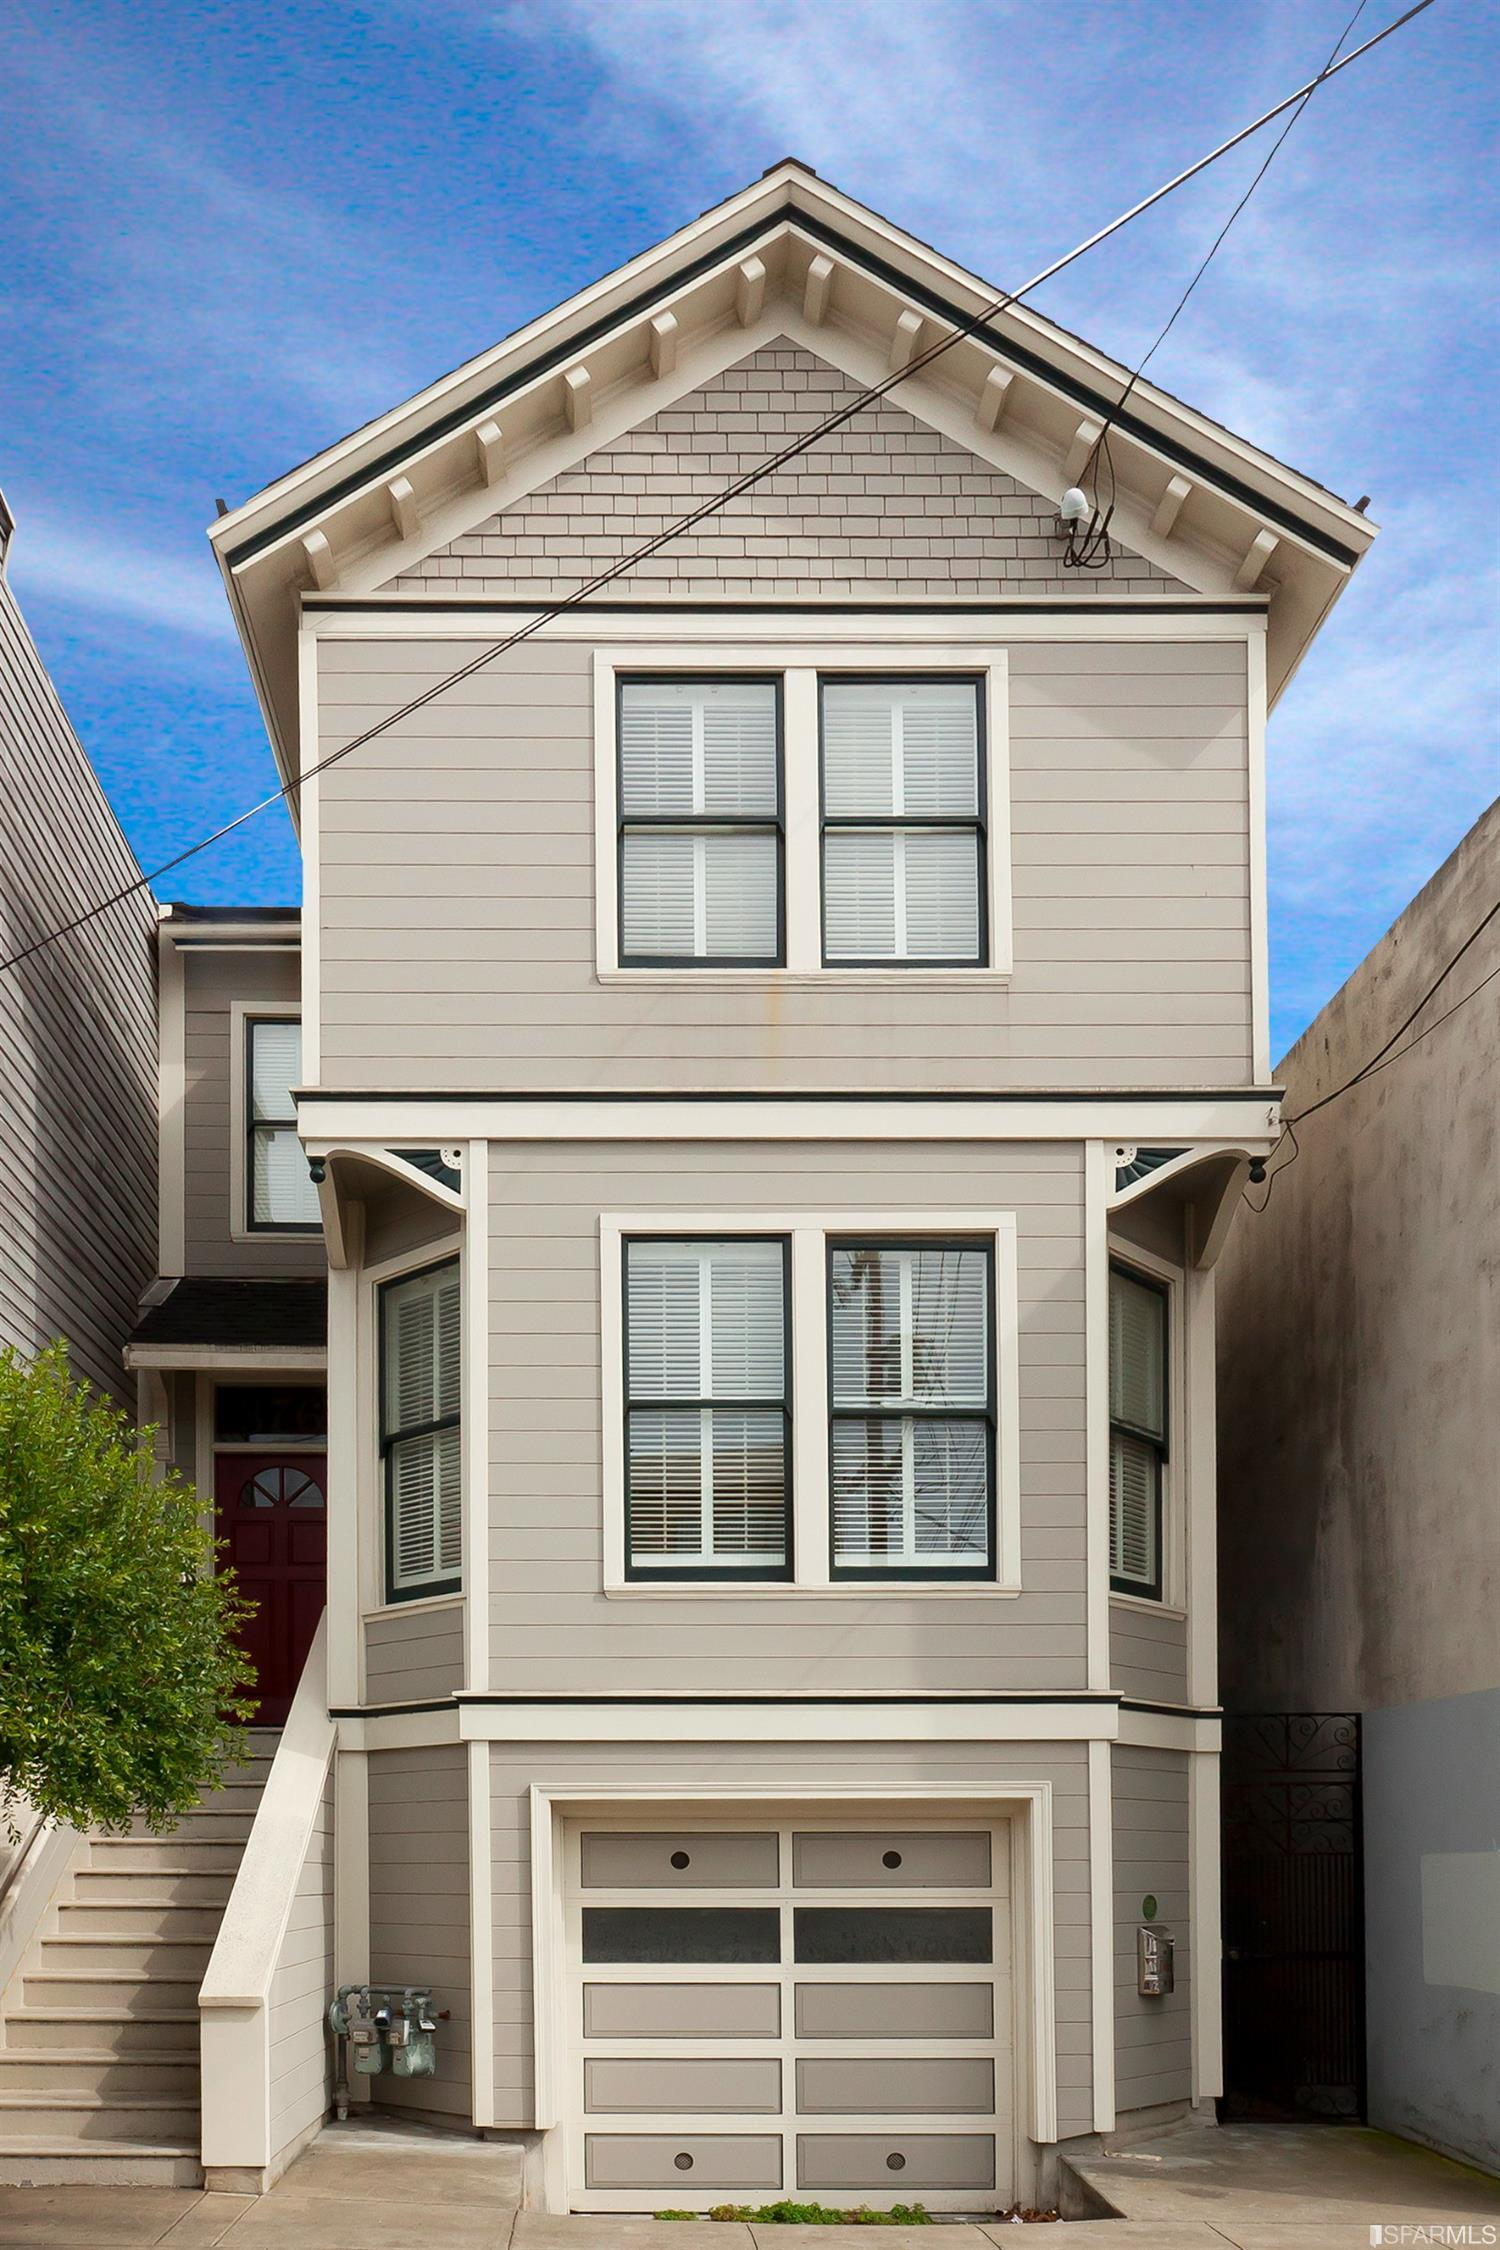 Additional photo for property listing at 376 10th Avenue  SAN FRANCISCO, CALIFORNIA 94118